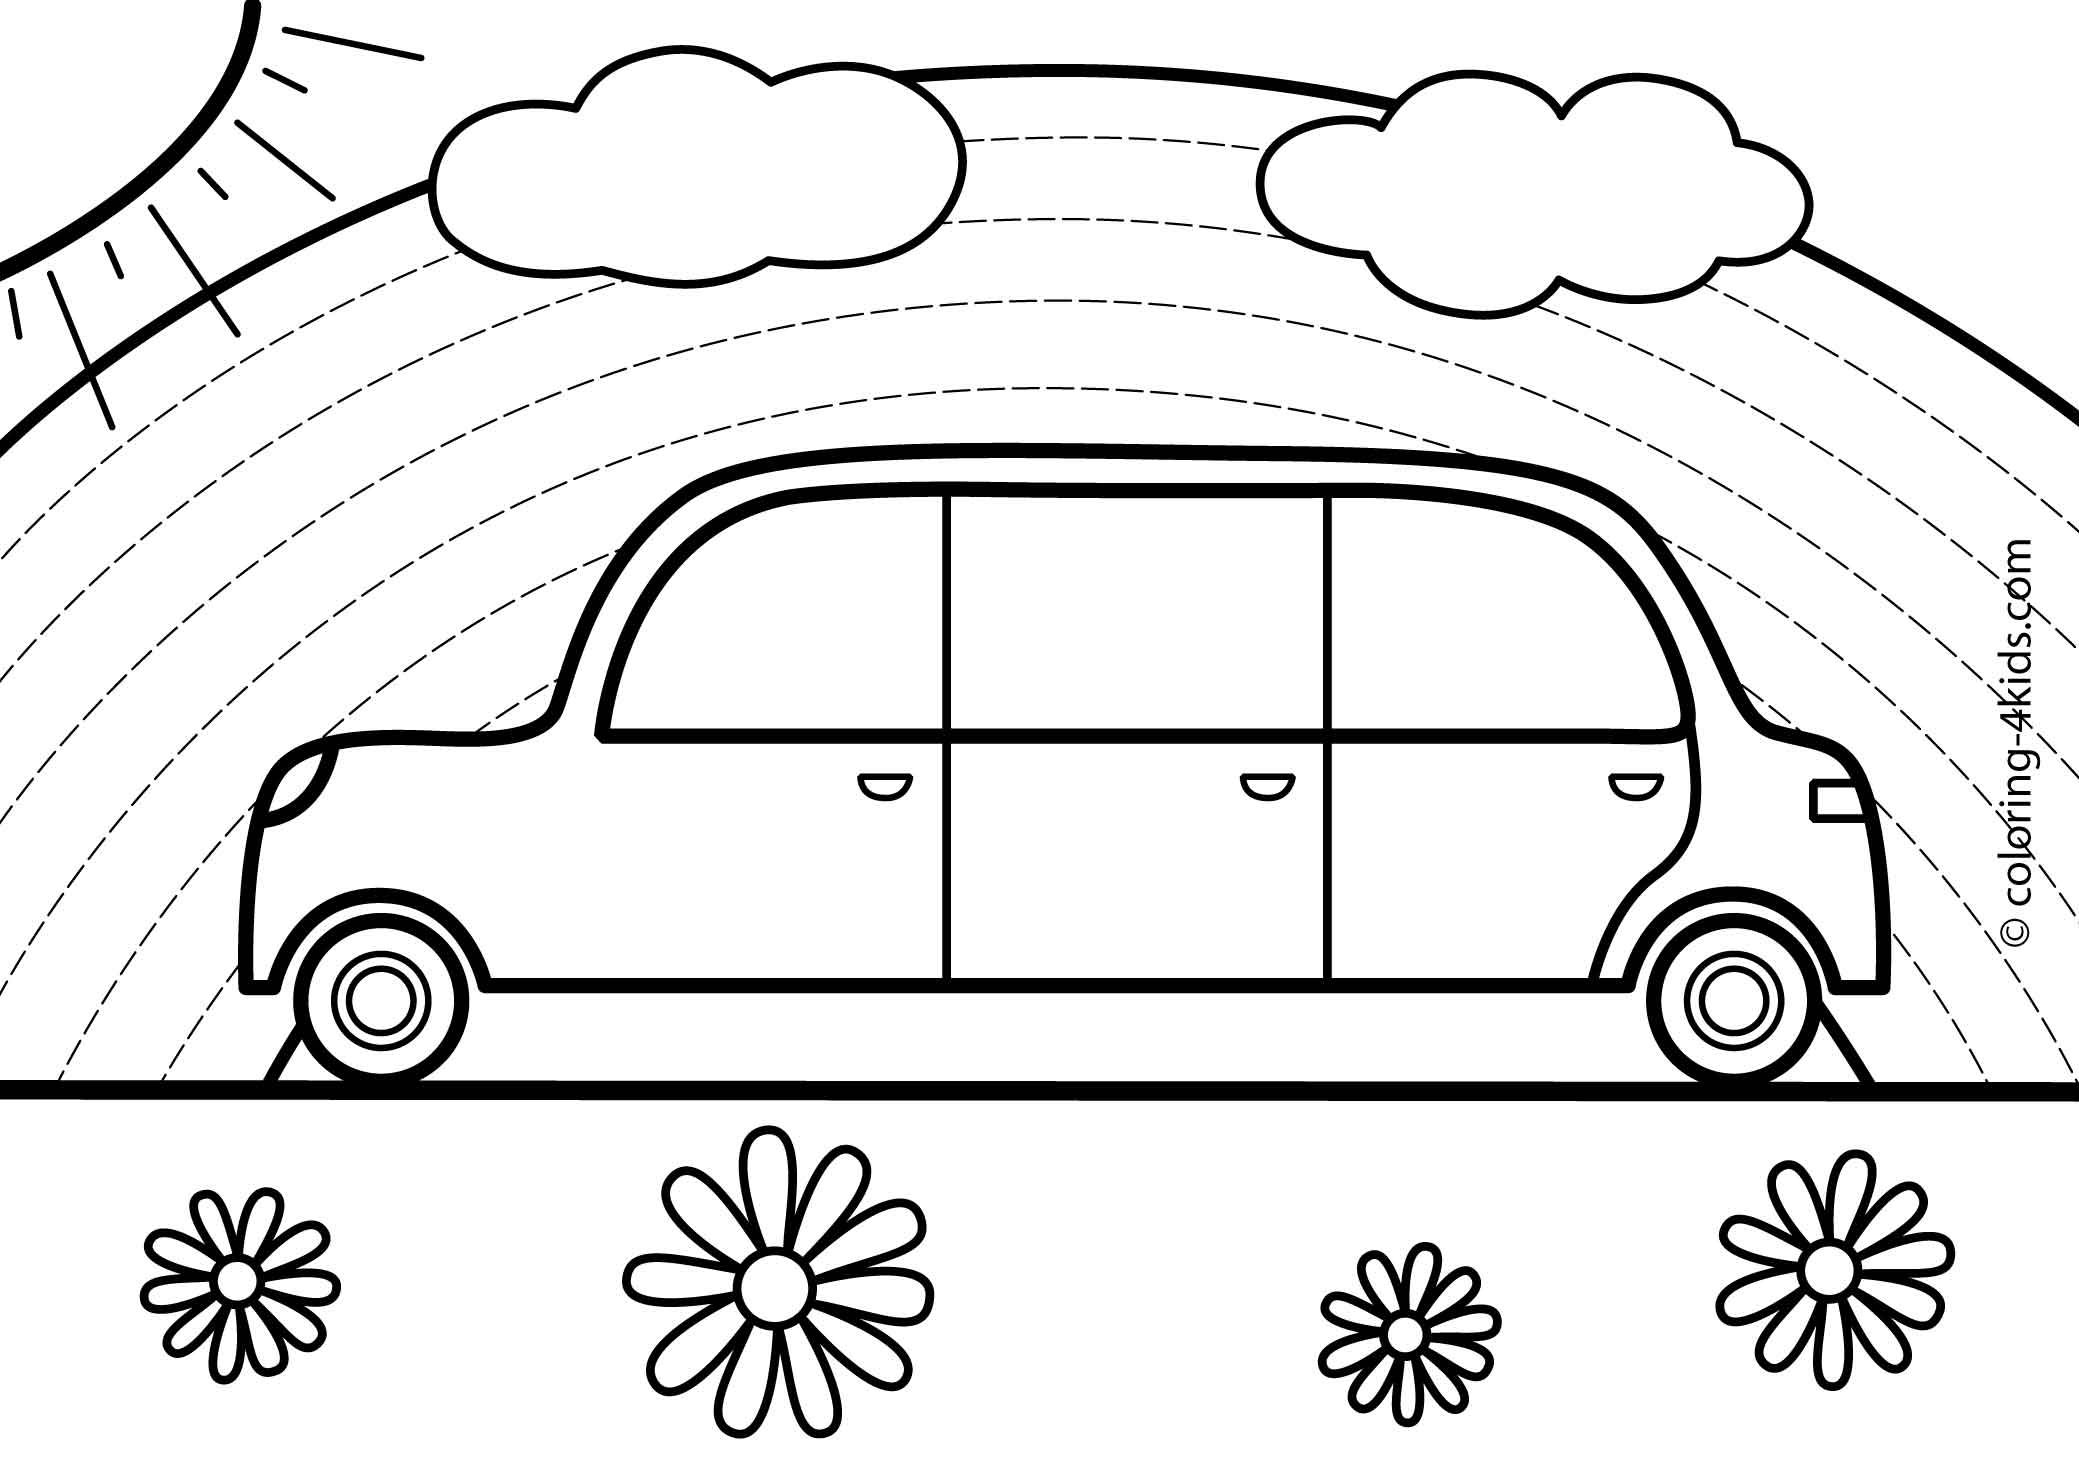 Rainbow Car Transportation Coloring Pages For Kids Printable Kids Printable Coloring Pages Crayola Coloring Pages Coloring Pages For Kids